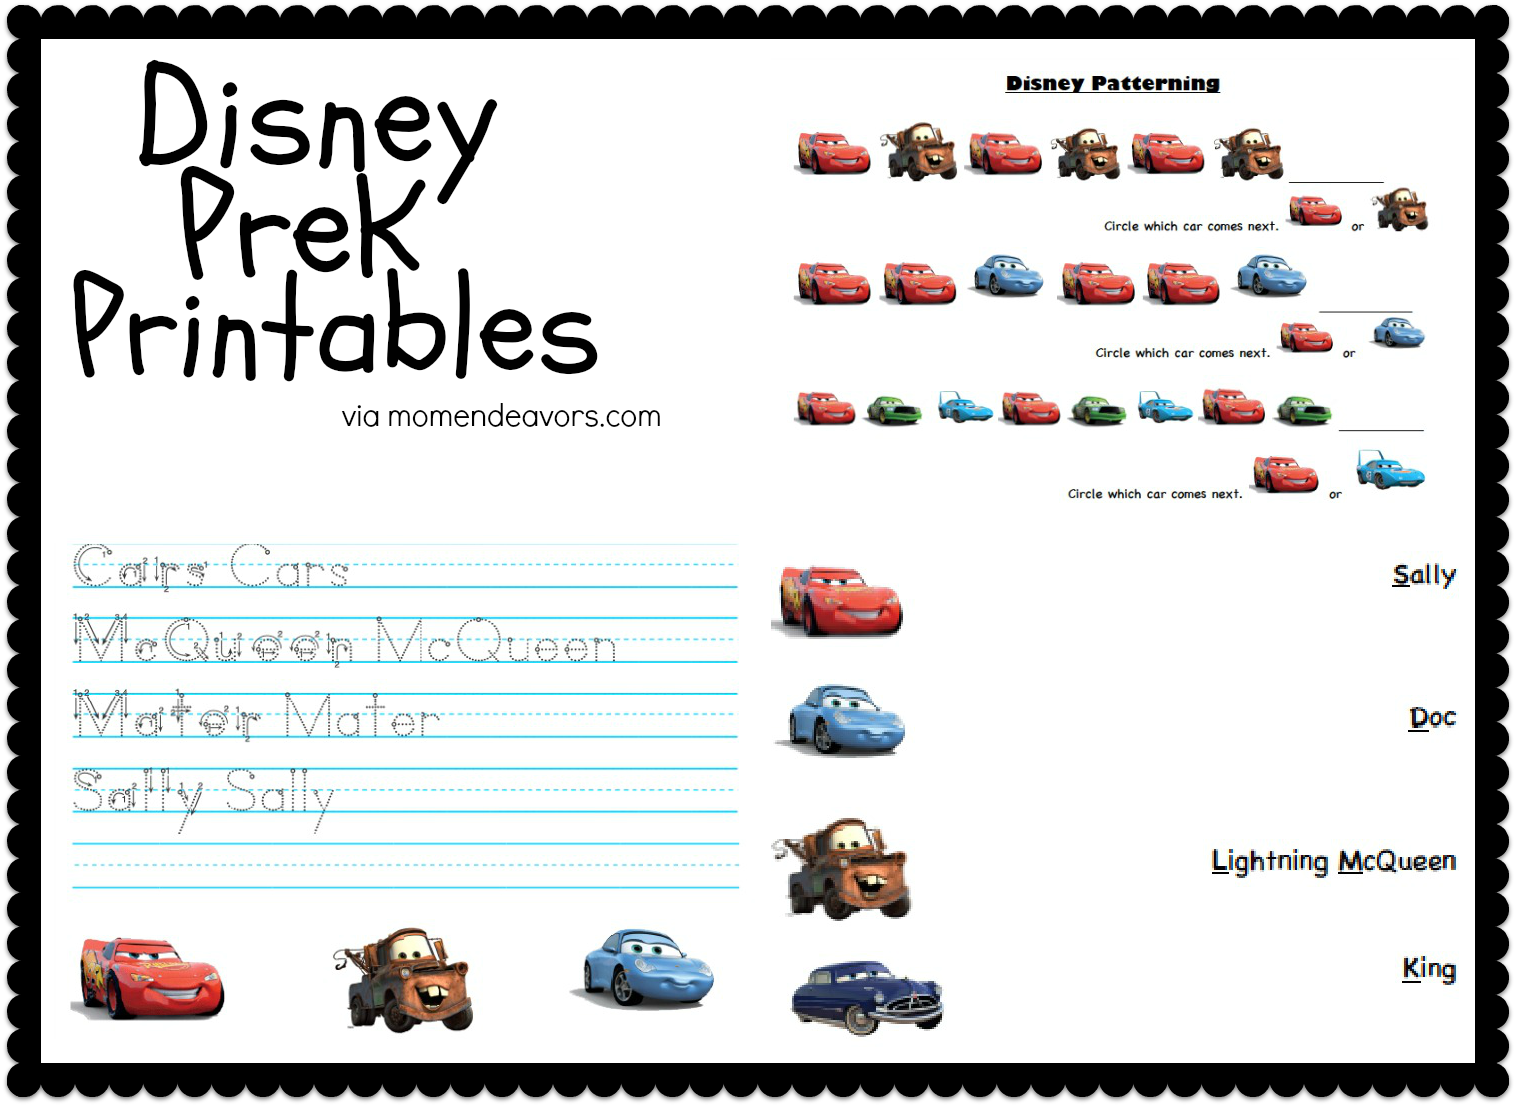 Disney-Pixar Cars PreK Printable Activity Sheets {Travel Tuesday}